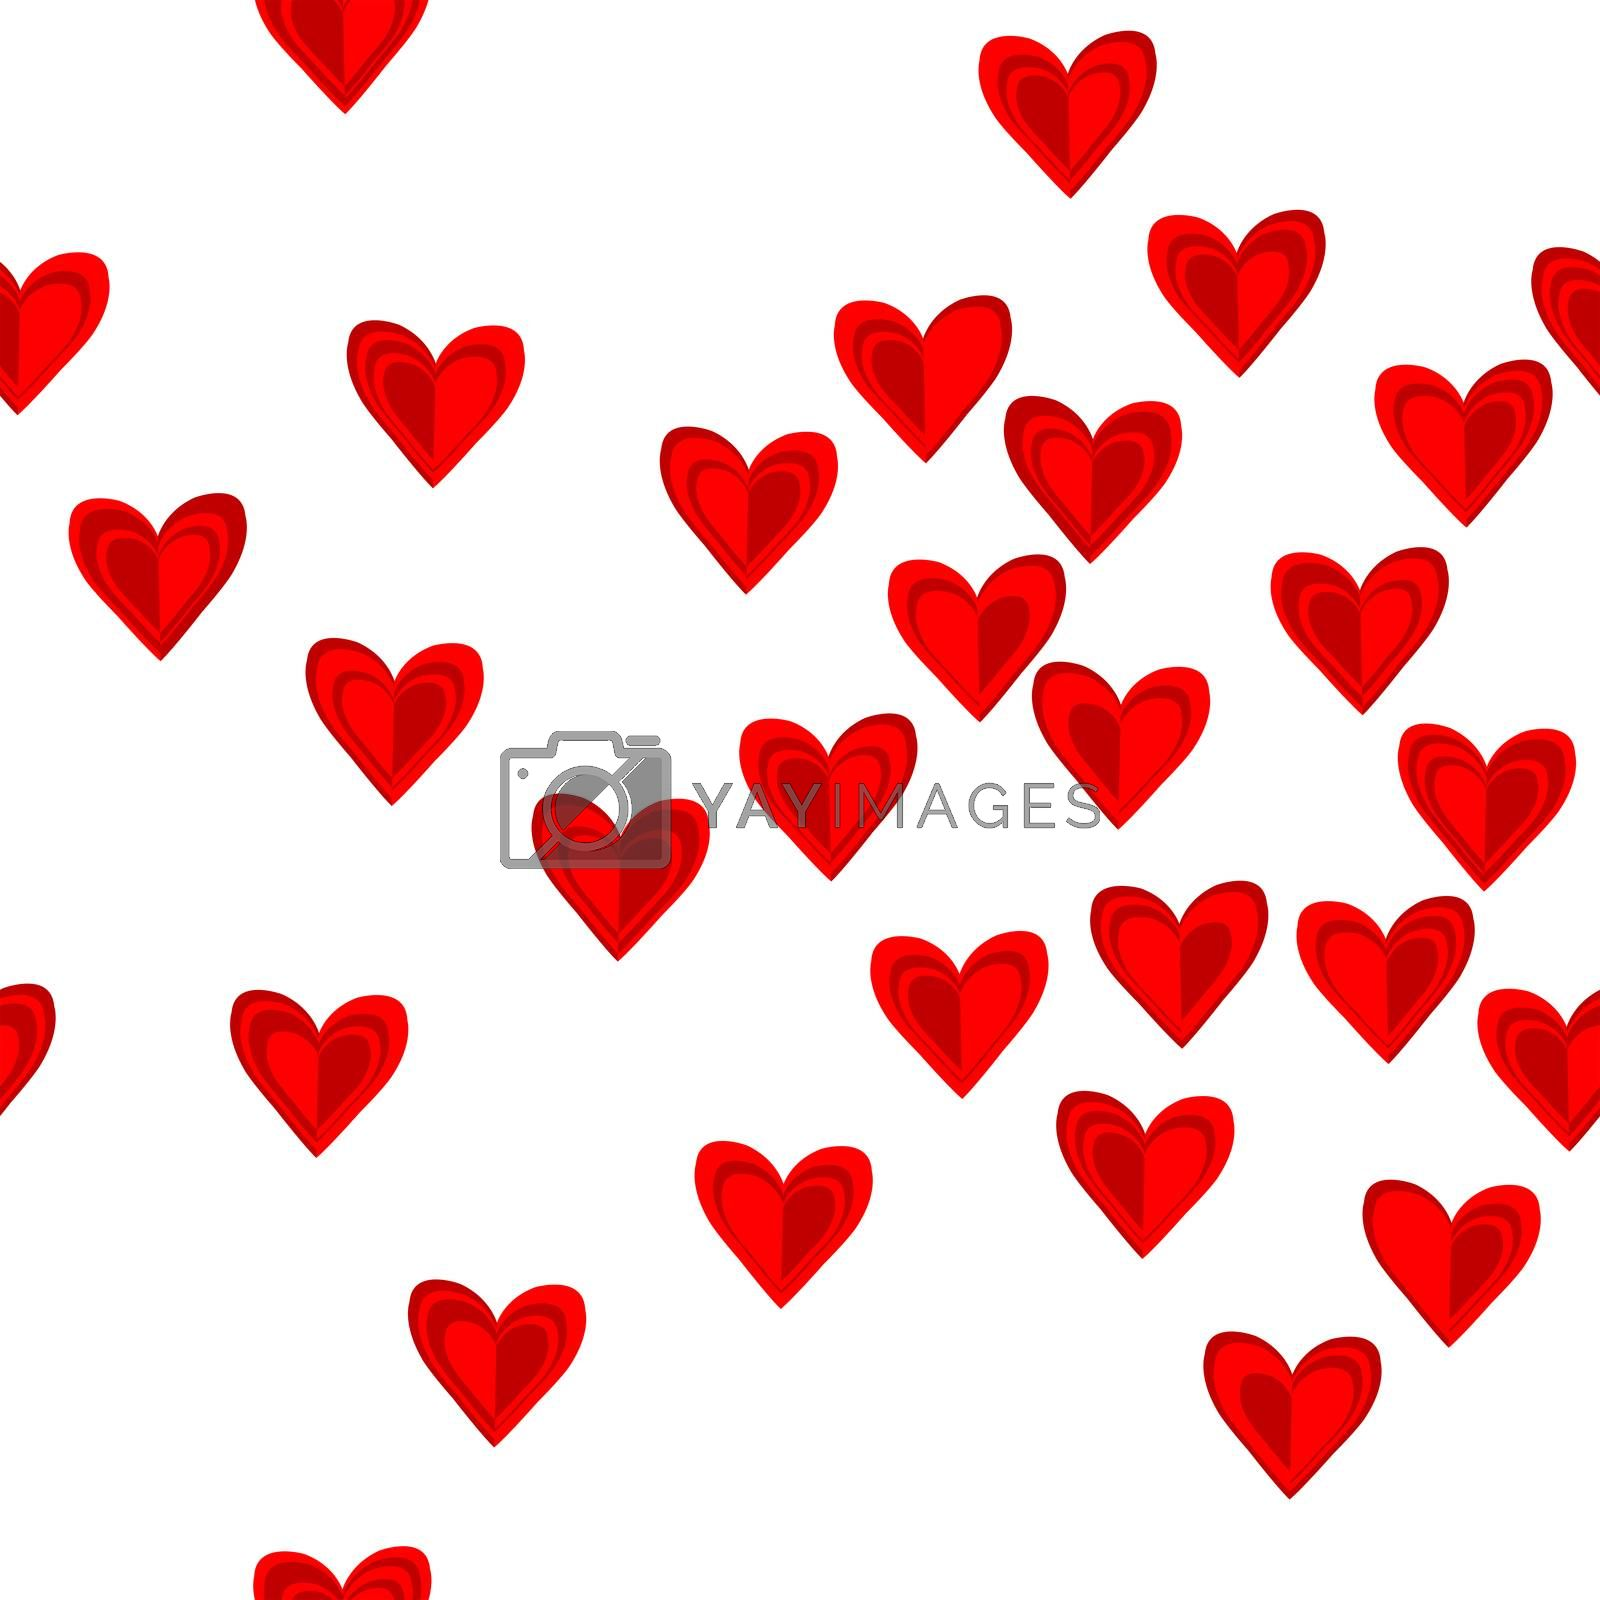 Seamless pattern with red hearts over white background